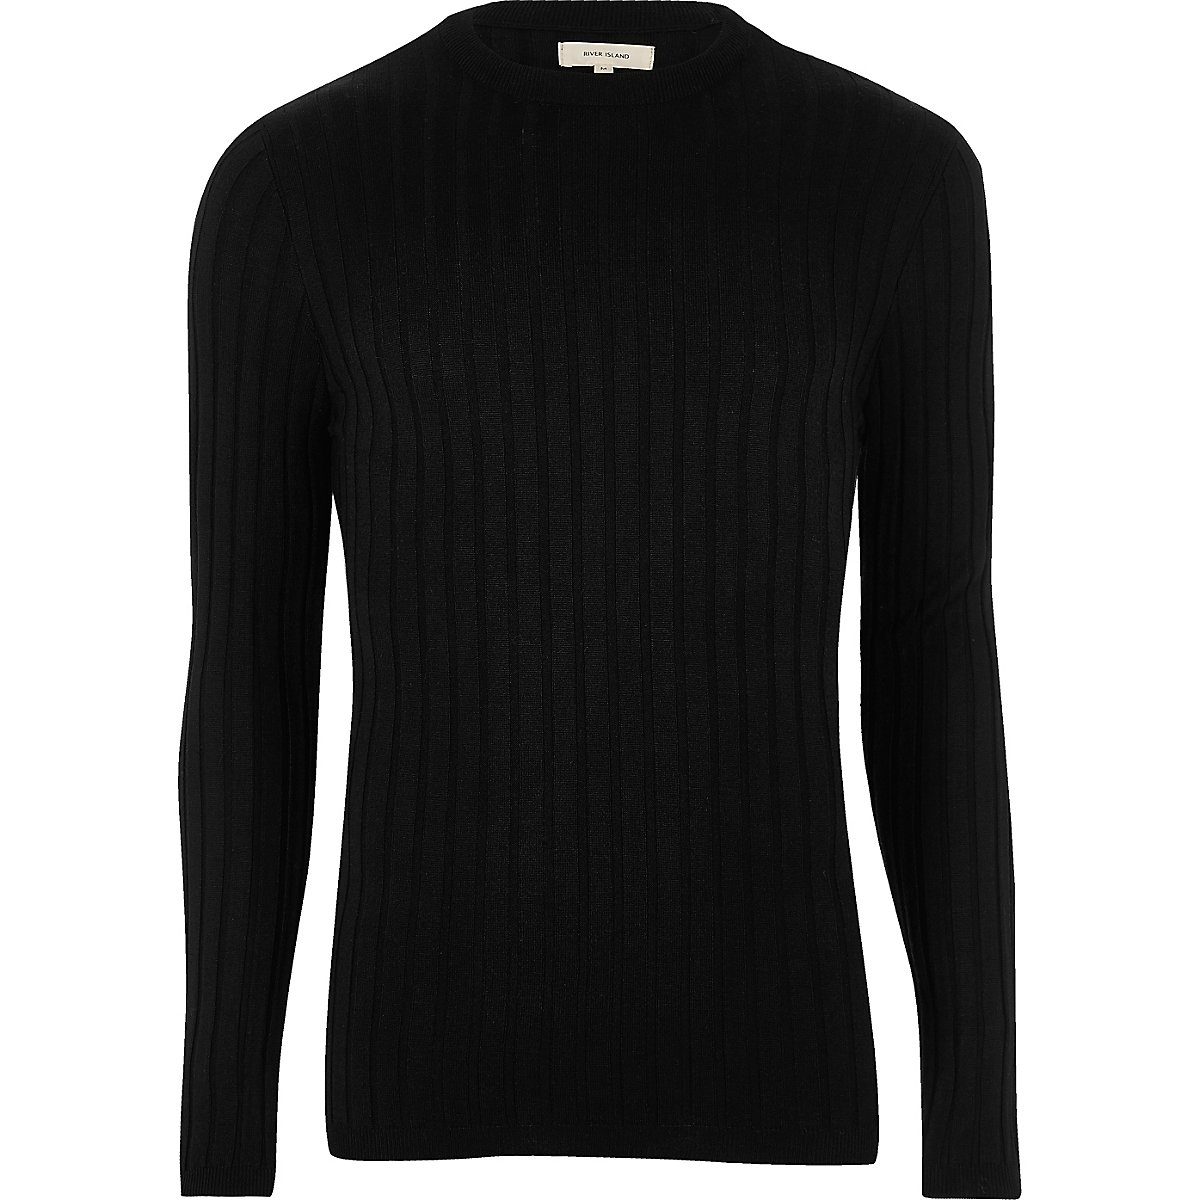 Black ribbed muscle fit sweater